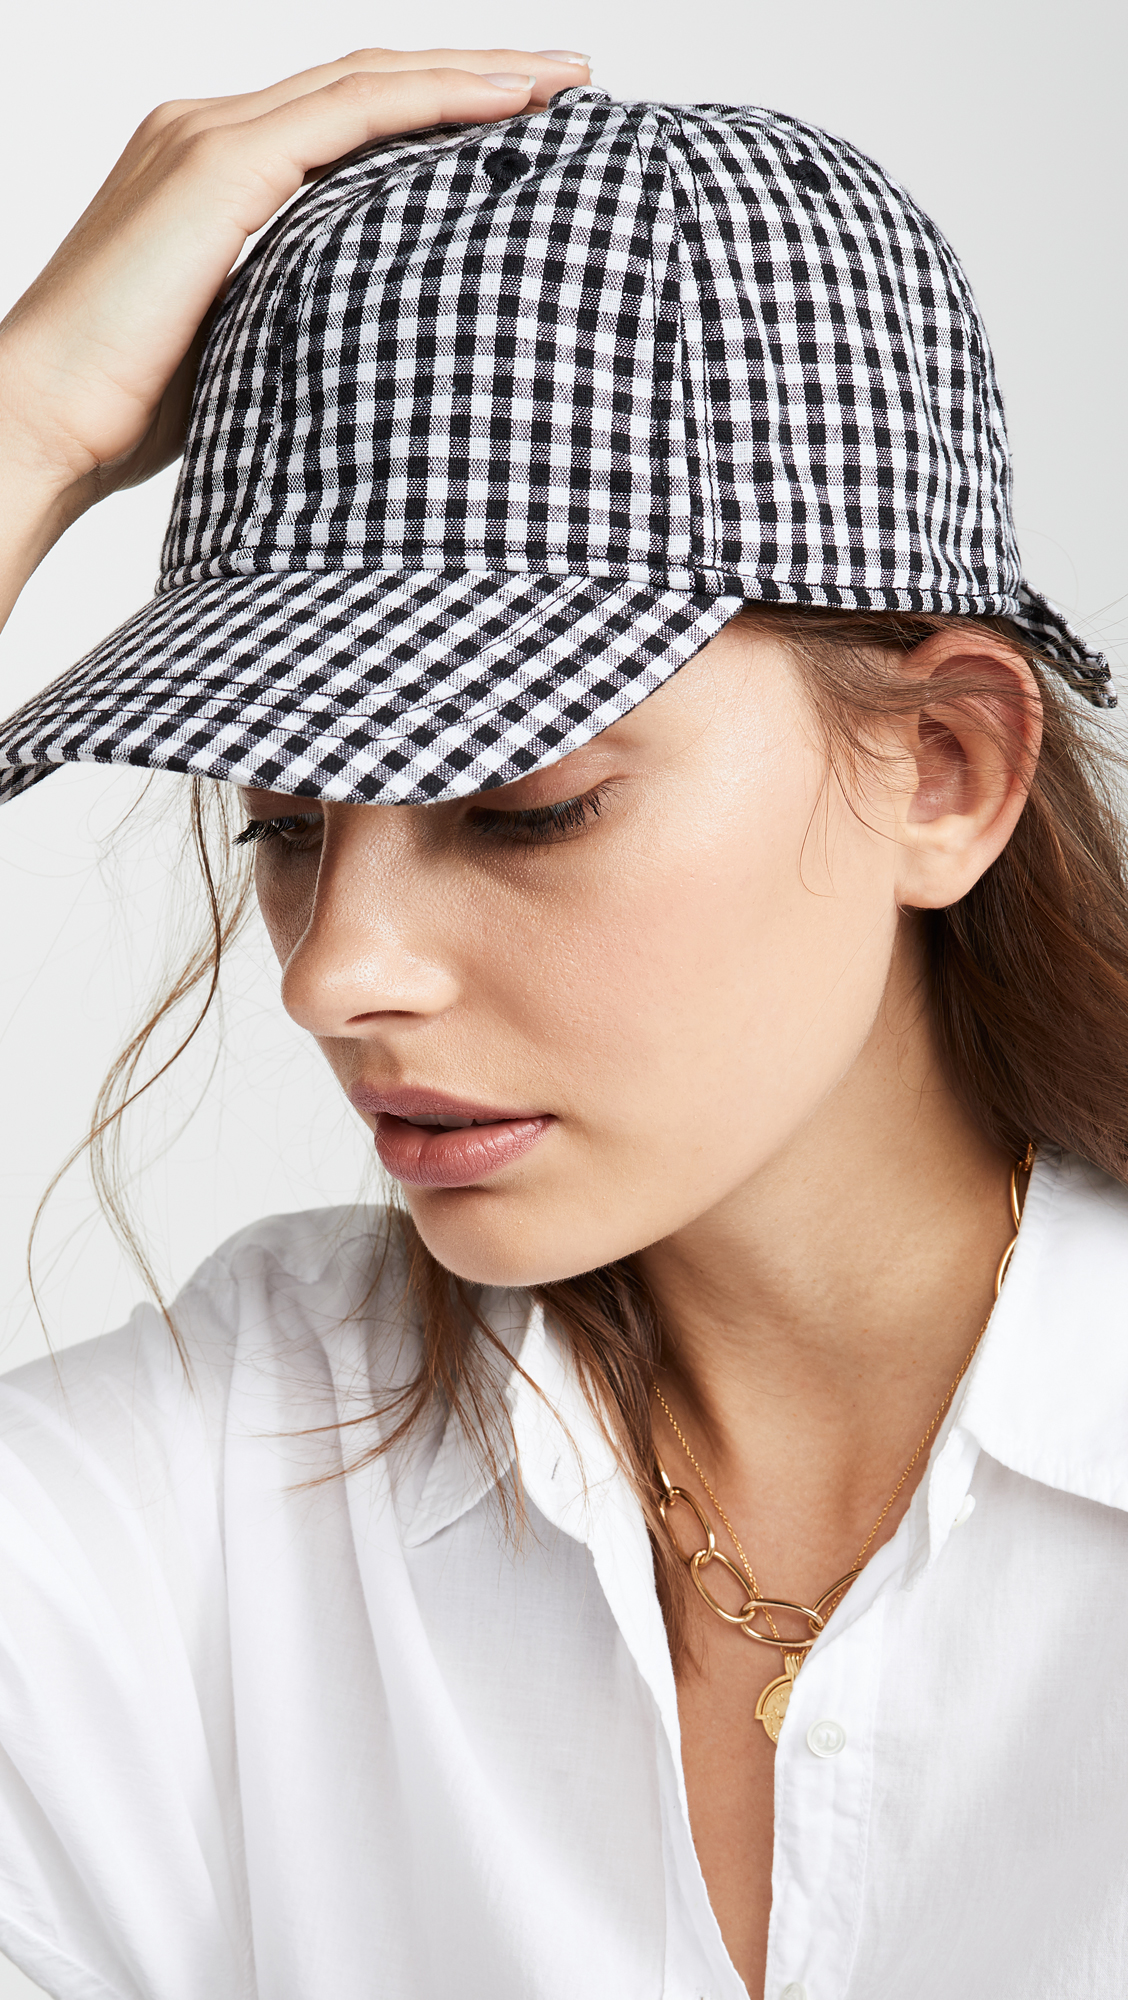 Gingham Tie Back Baseball Cap Black and White